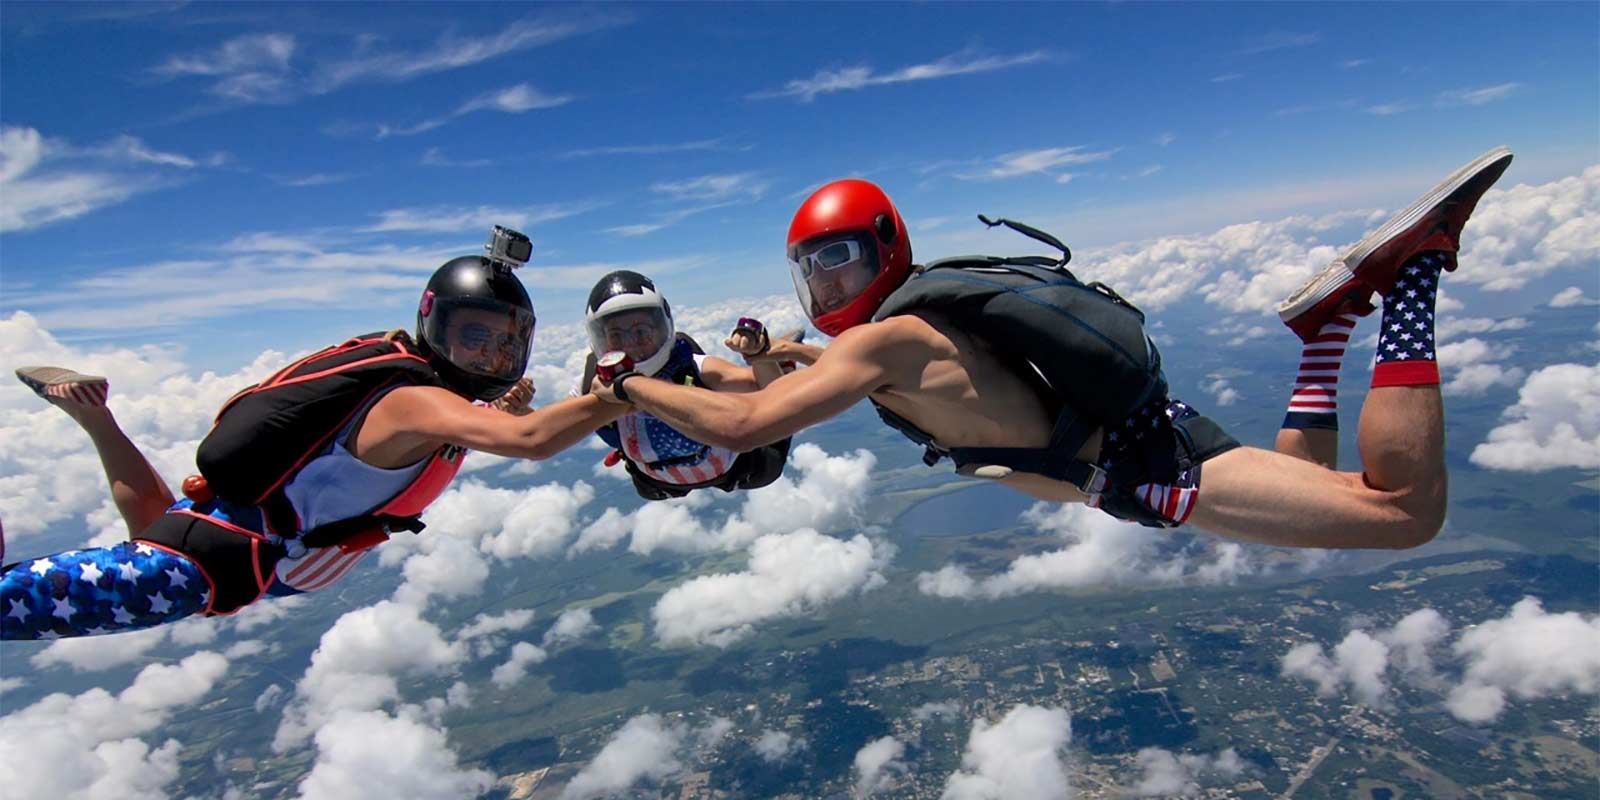 3 fun jumpers in patriotic dress join hands in formation while in skydiving freefall